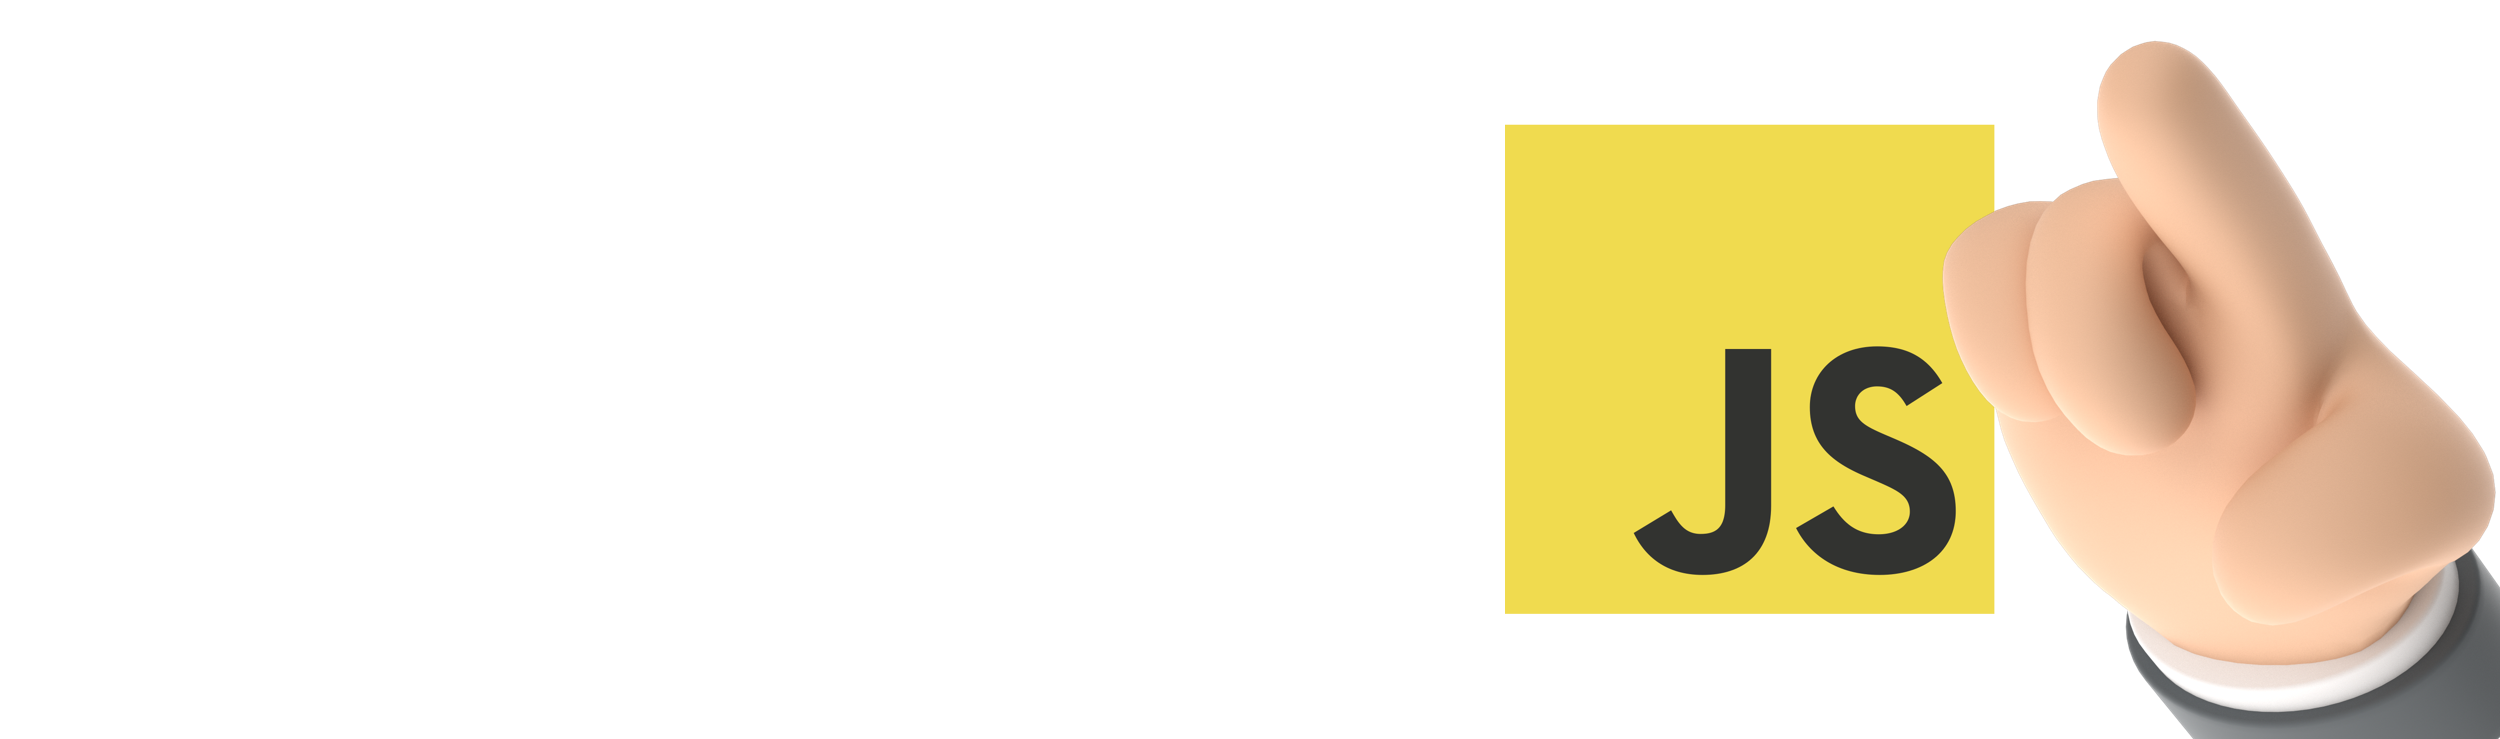 Yellow JS logo beside hand pointing